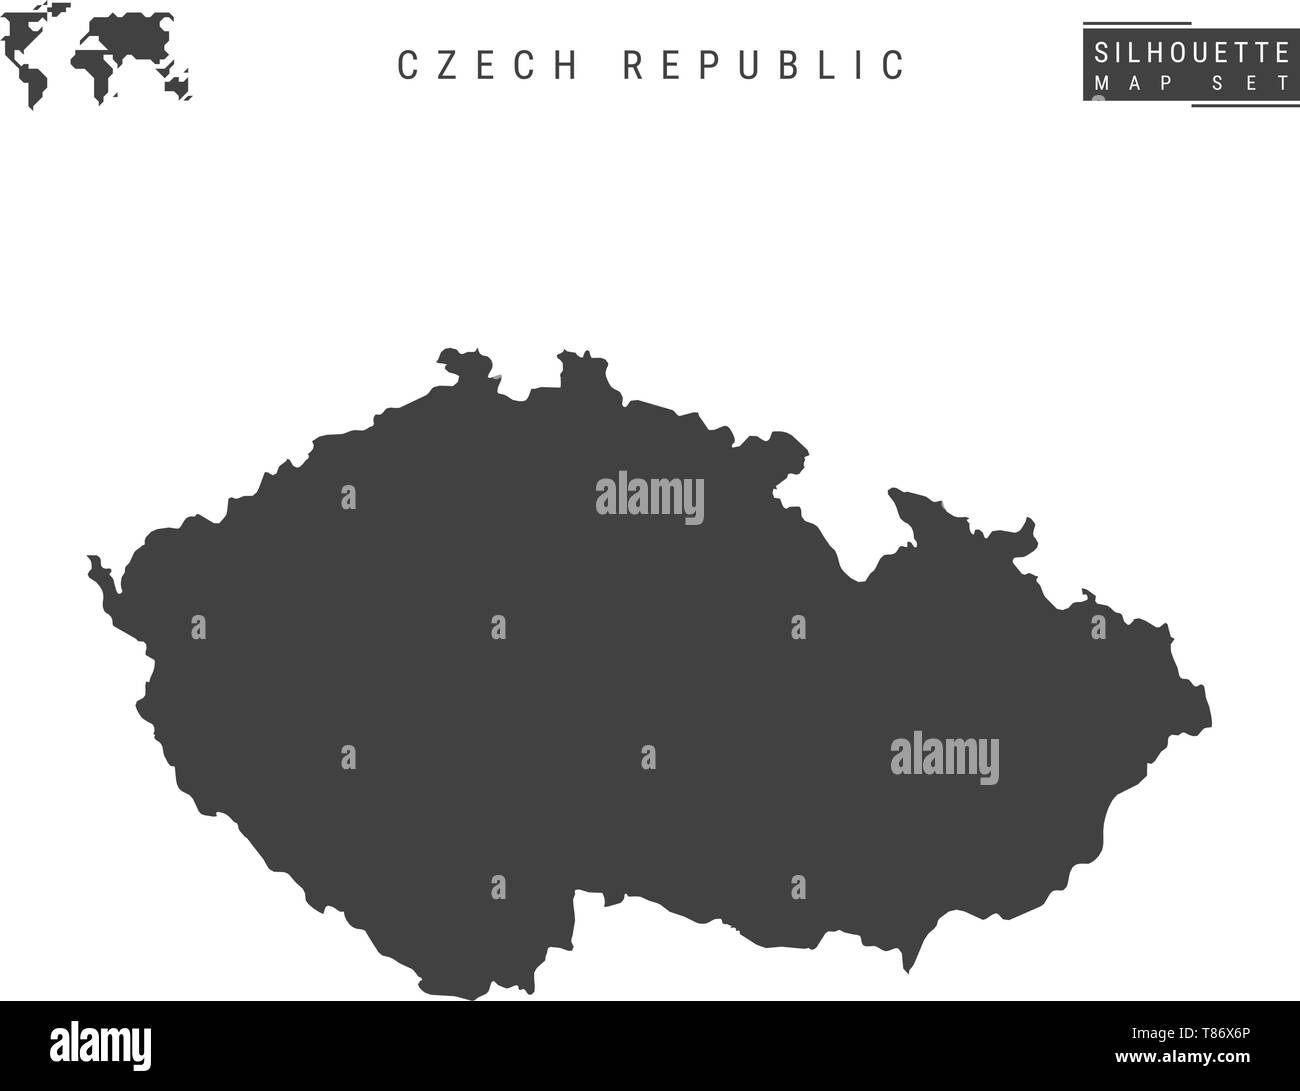 Czech Republic Blank Vector Map Isolated on White Background. High-Detailed Black Silhouette Map of Czech. - Stock Image